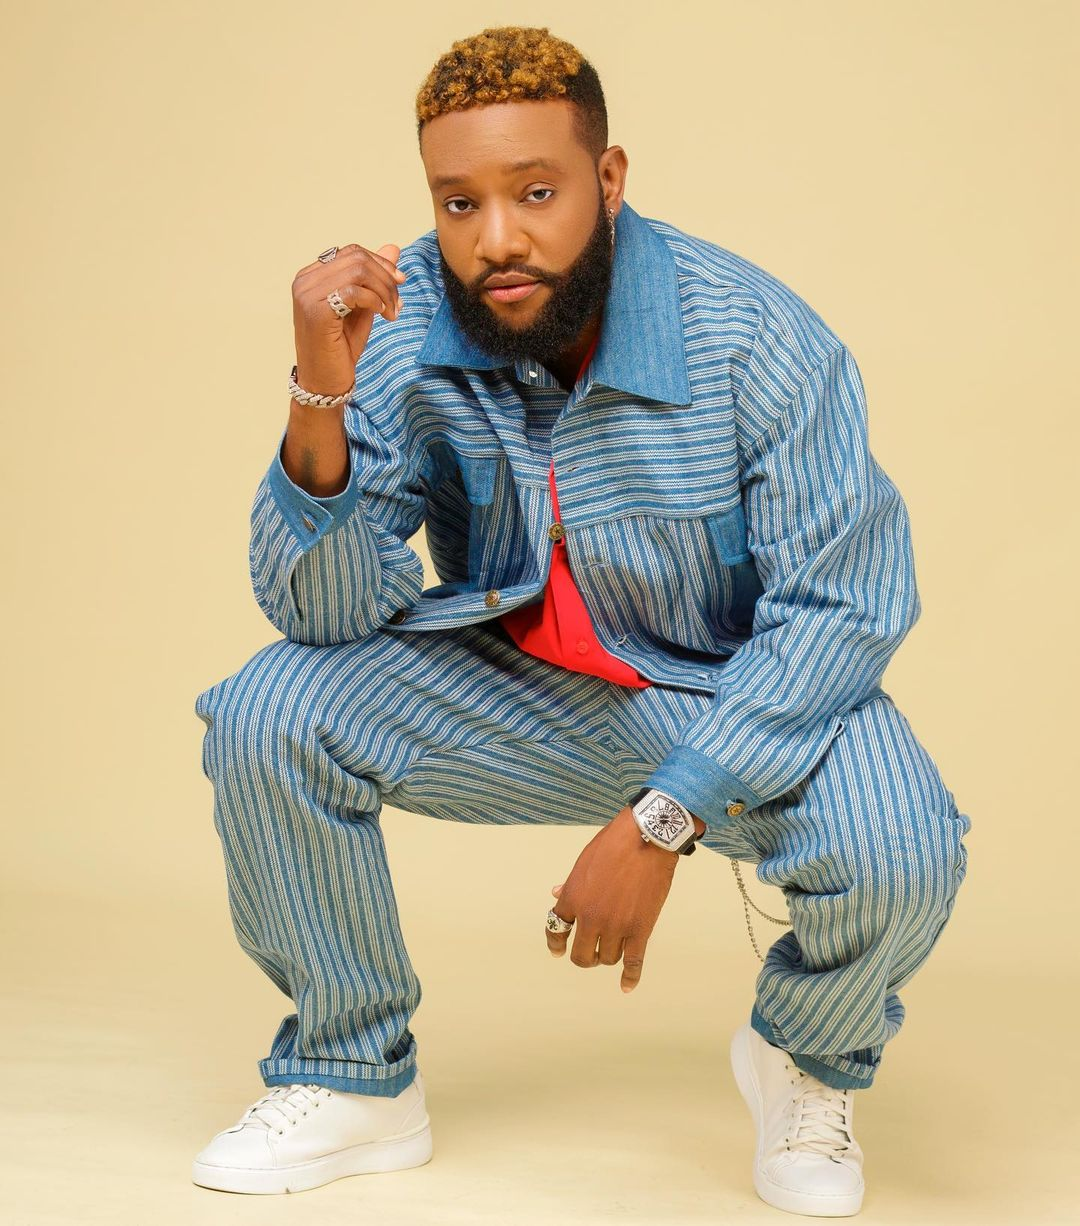 male-celebrities-africa-best-dressed-effortless-cool-style-rave